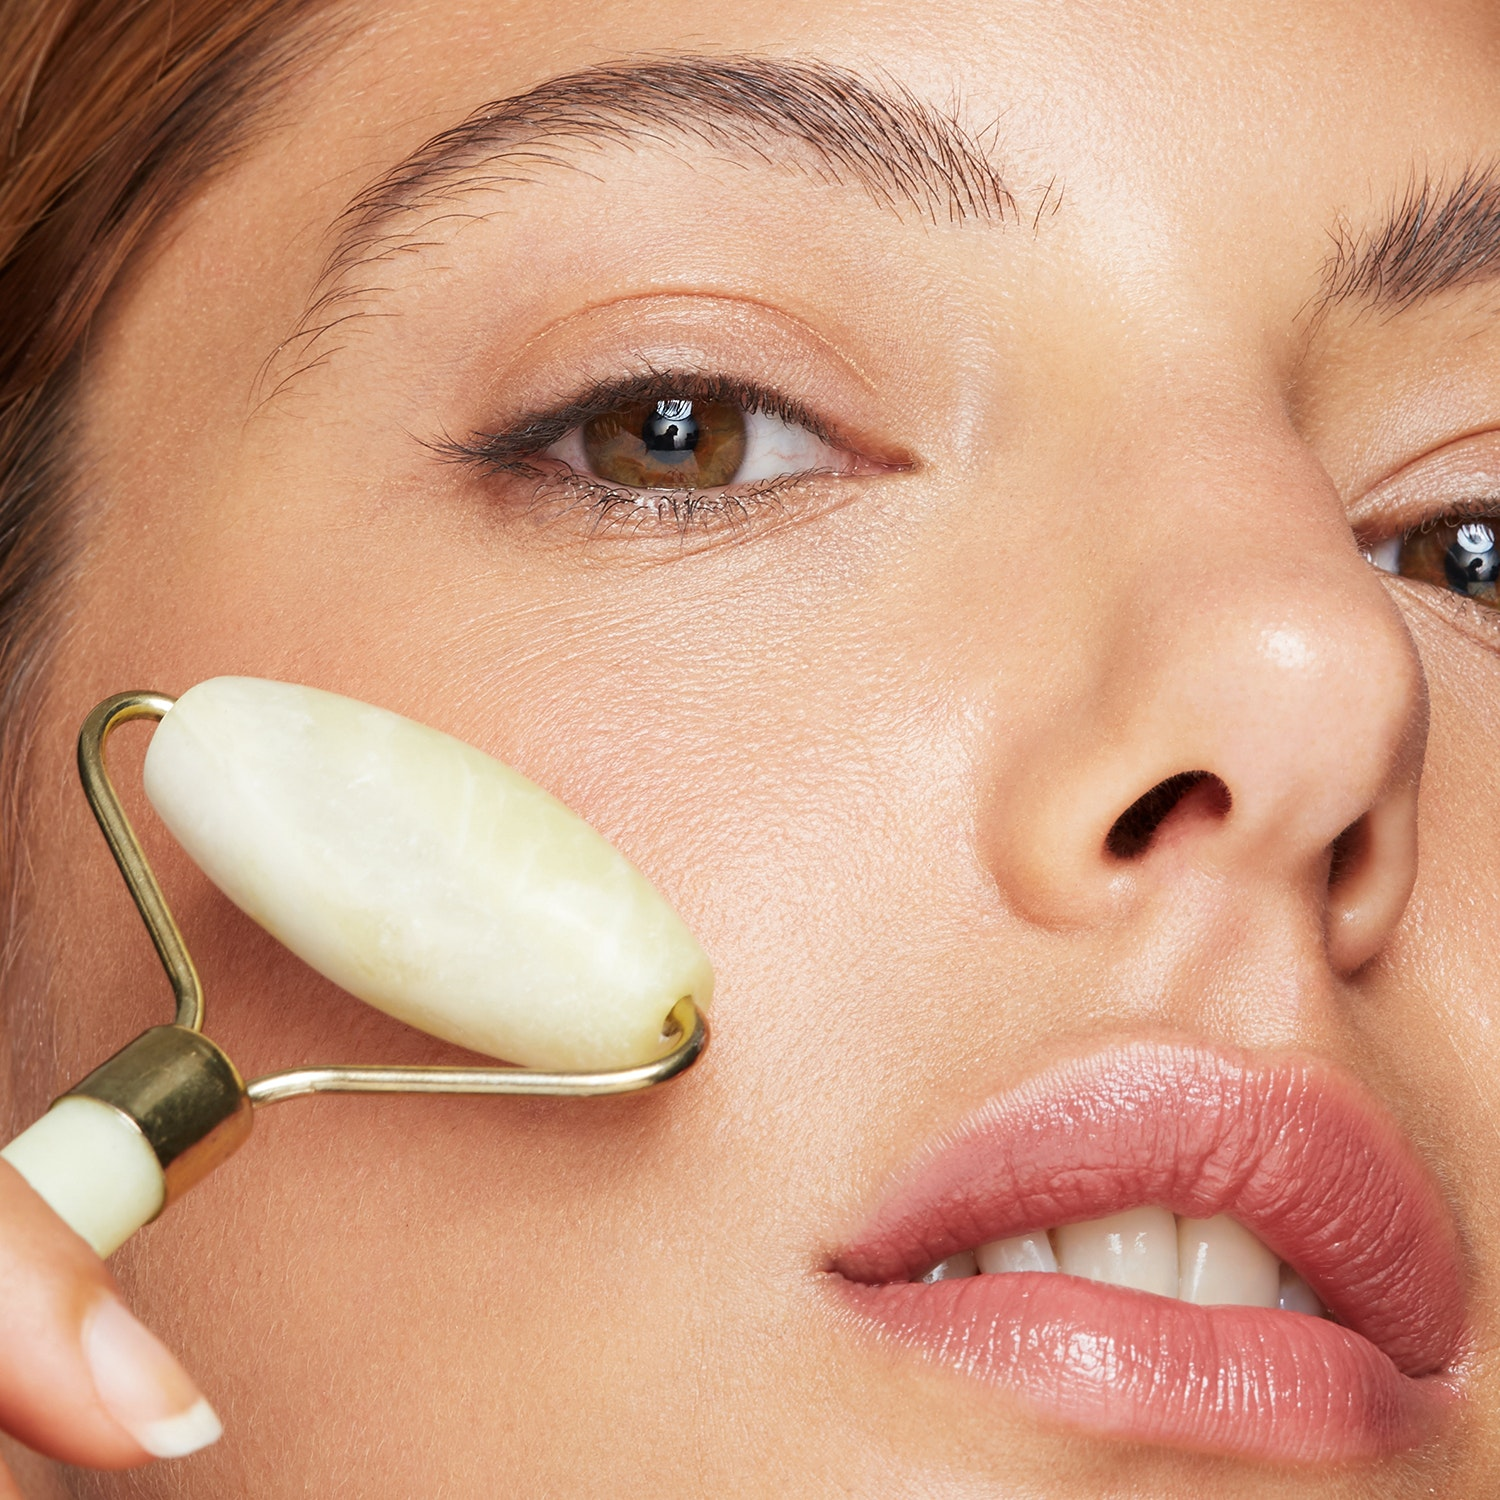 Glide Your Way to a Less Puffy-Looking Face With These Gua Sha and Crystal Rollers